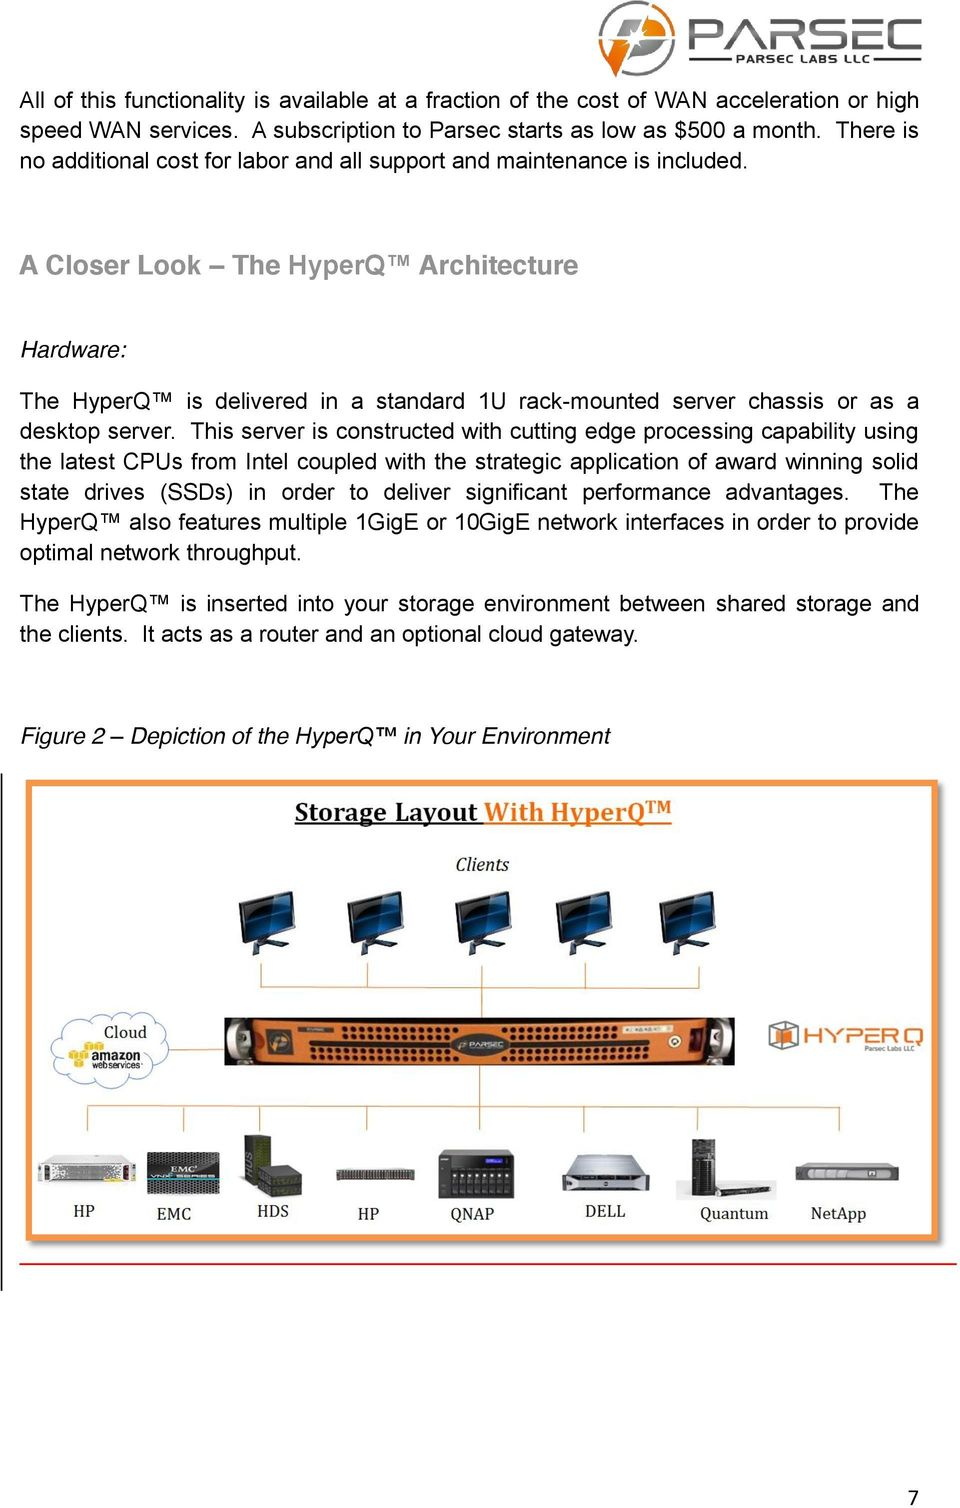 A Closer Look The HyperQ Architecture Hardware: The HyperQ is delivered in a standard 1U rack-mounted server chassis or as a desktop server.